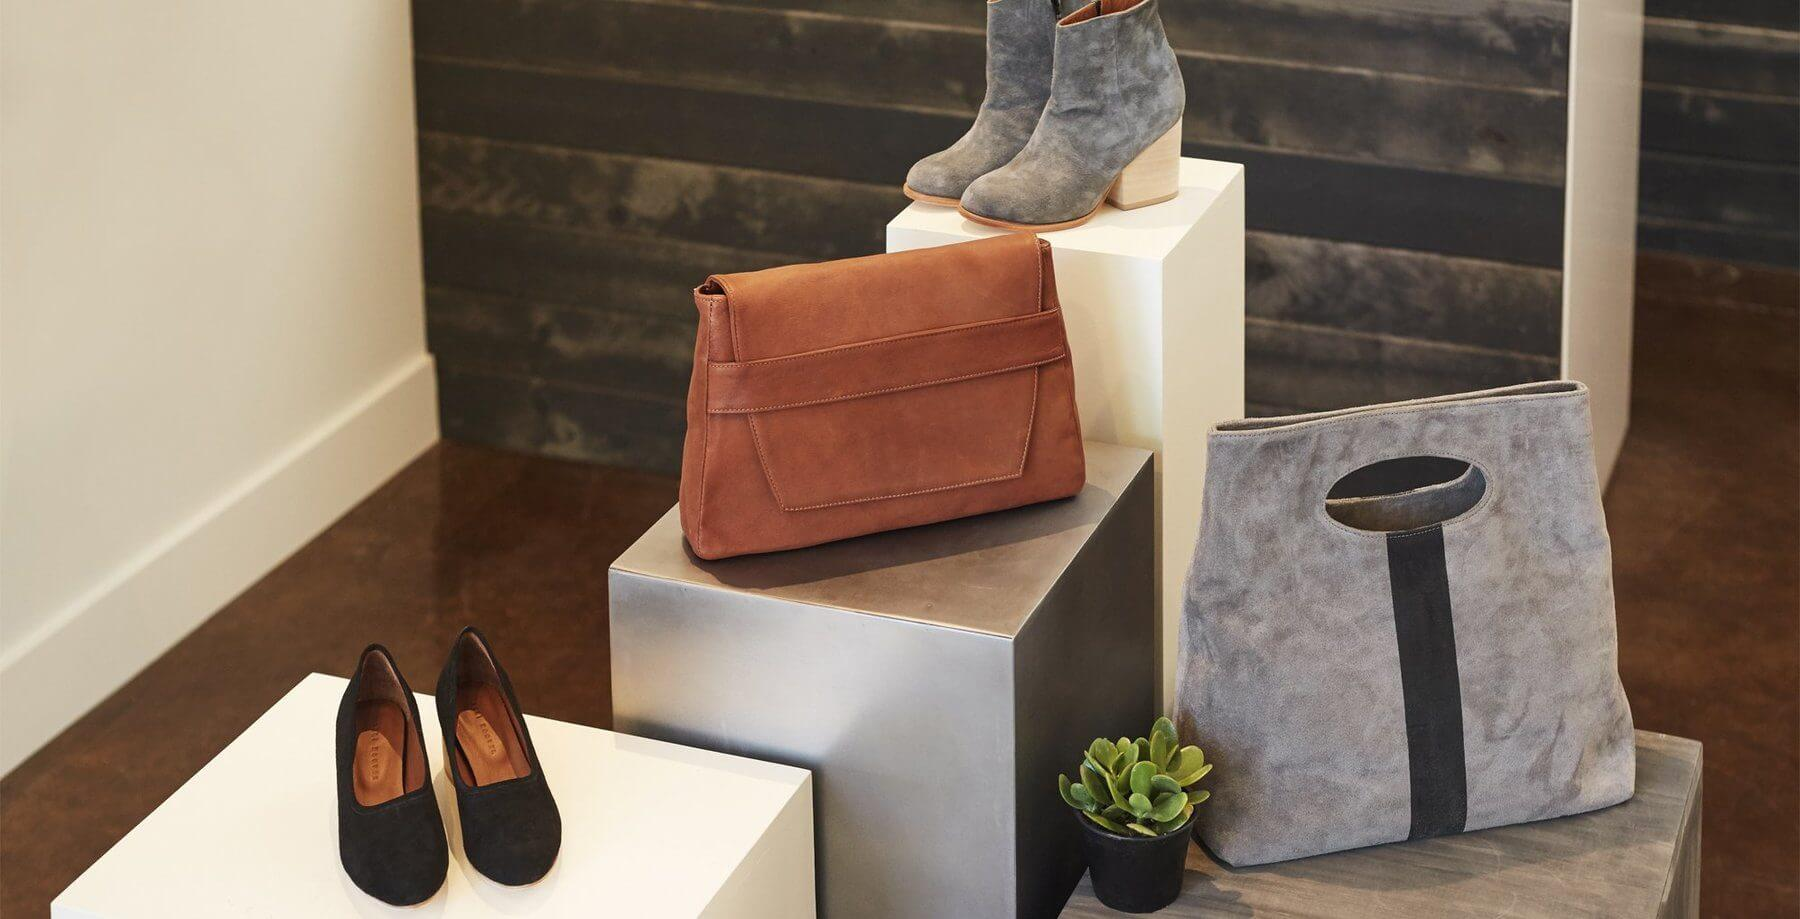 Ceri Hoover is both an online and bricks-and-mortar destination with amazing shoes, bags and accessories.